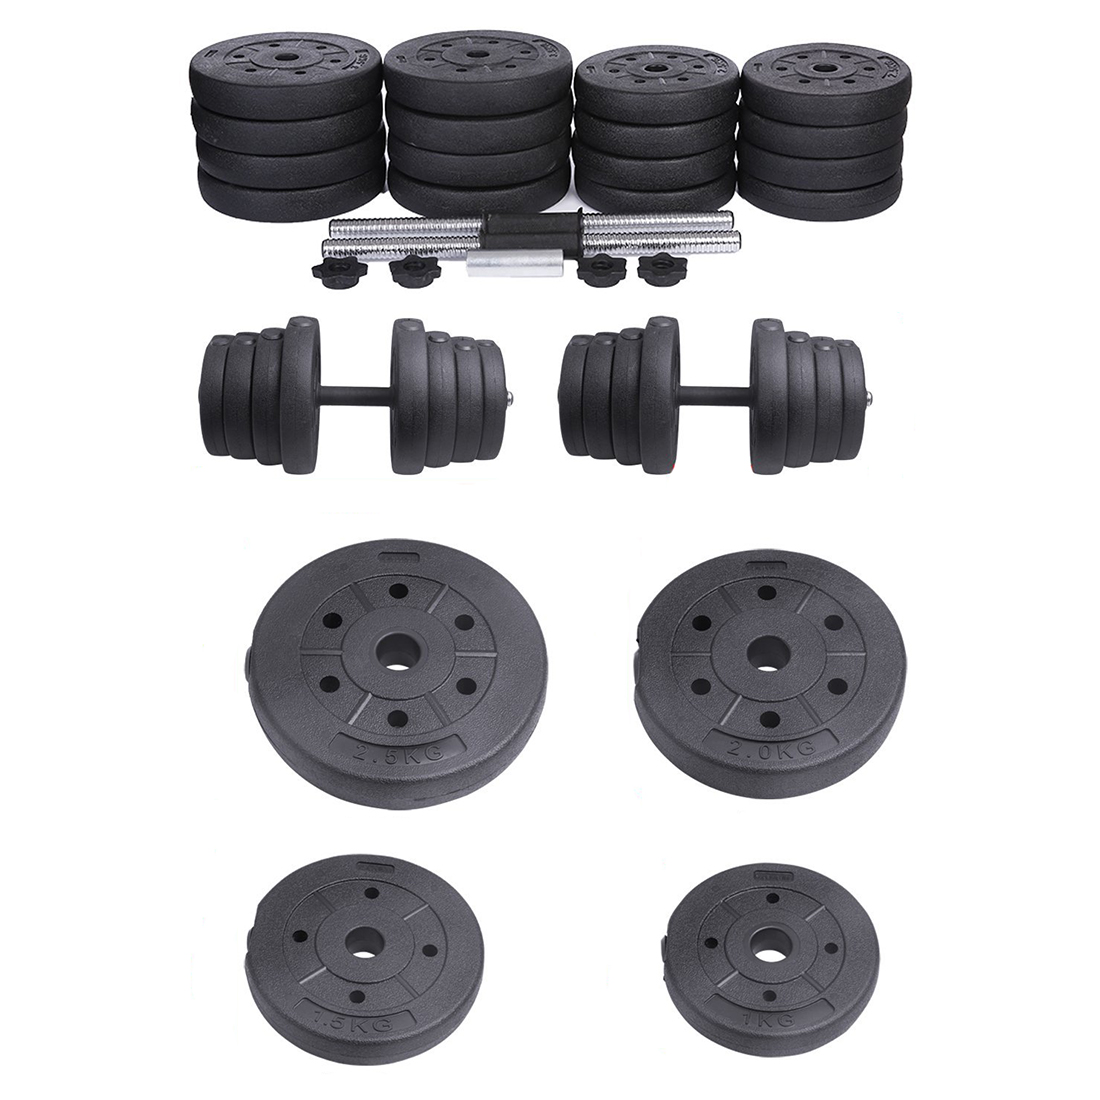 2x Dumbbell Free Weights Dumbells Set Gym Bench Barbell Bicep Workout Lifti H6p5 Ebay